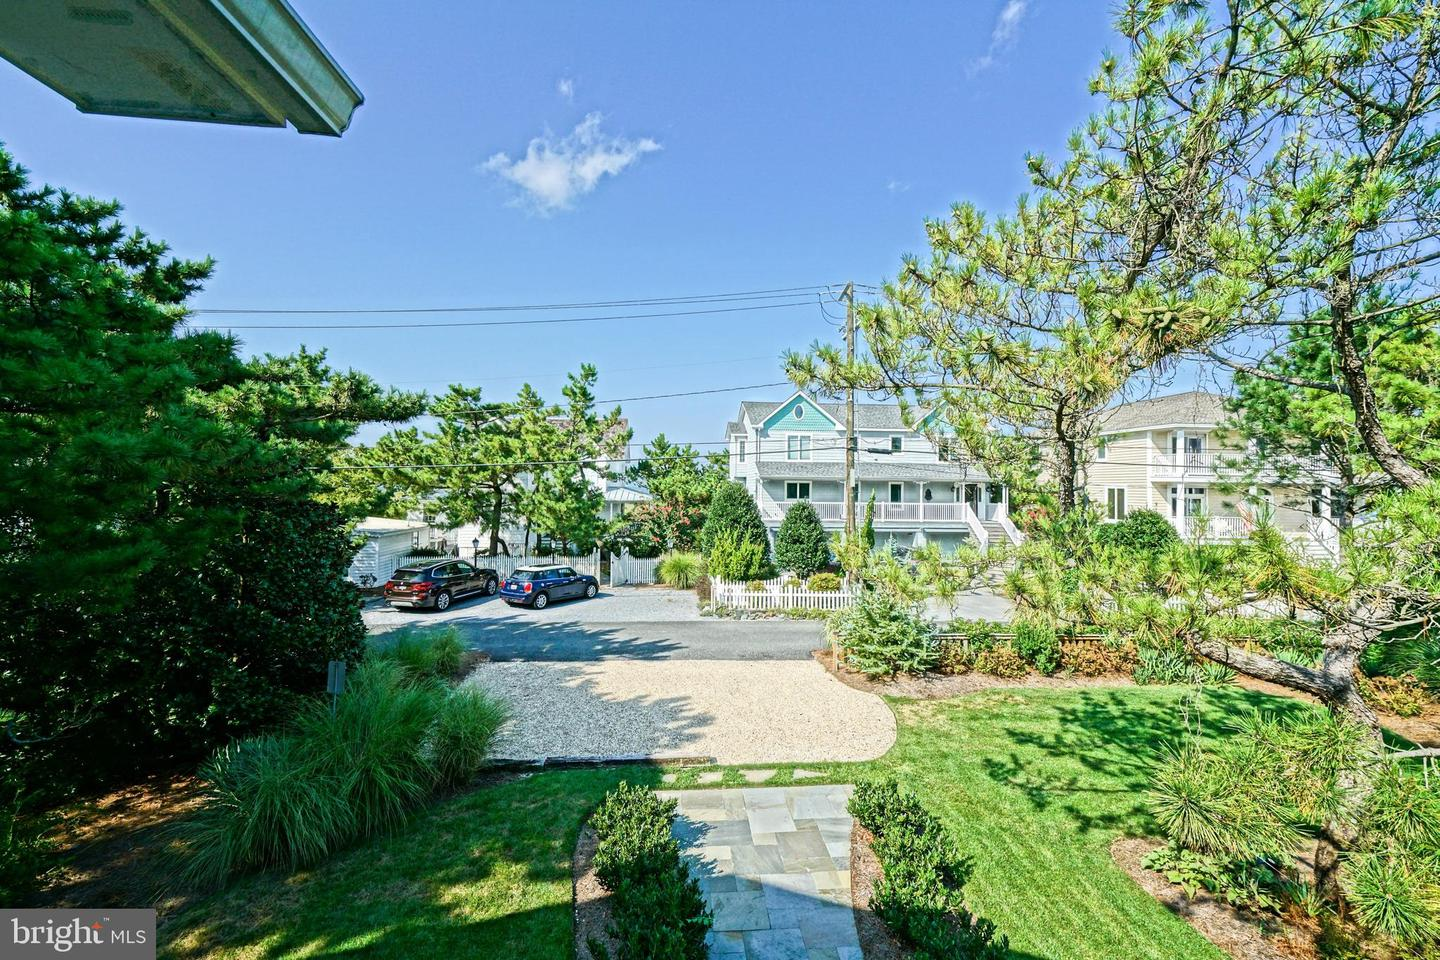 DESU168356-304281455130-2020-11-14-13-42-25 211 Bay Ave | Lewes, DE Real Estate For Sale | MLS# Desu168356  - Lee Ann Group